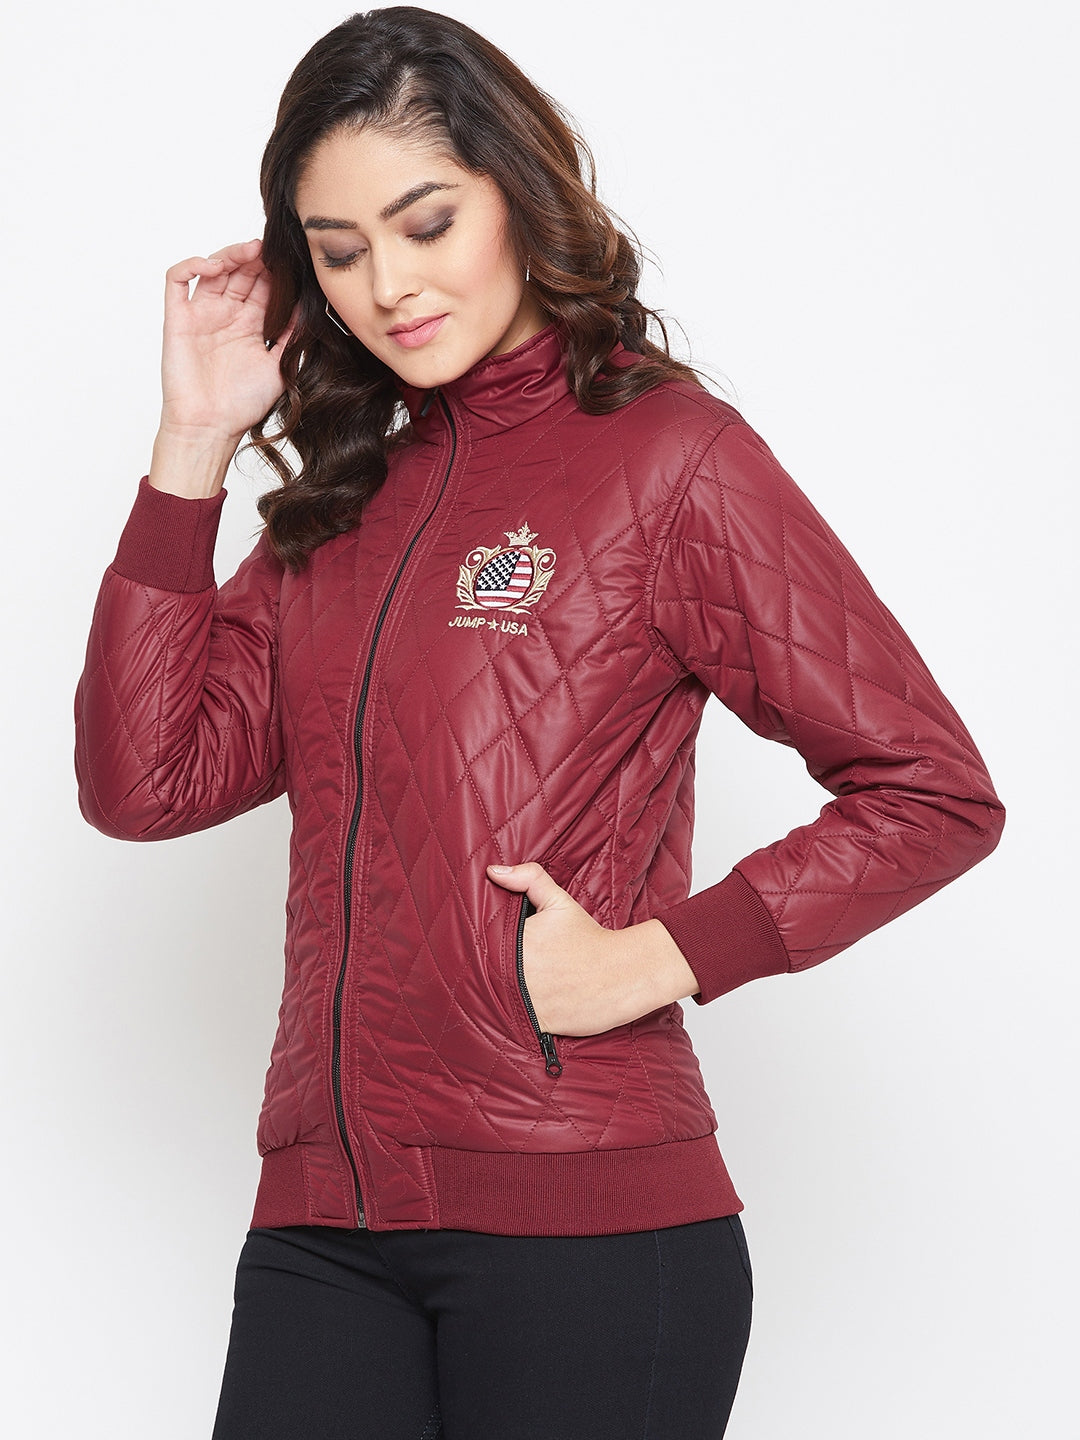 JUMP USA Women Maroon Self Design Jacket - JUMP USA